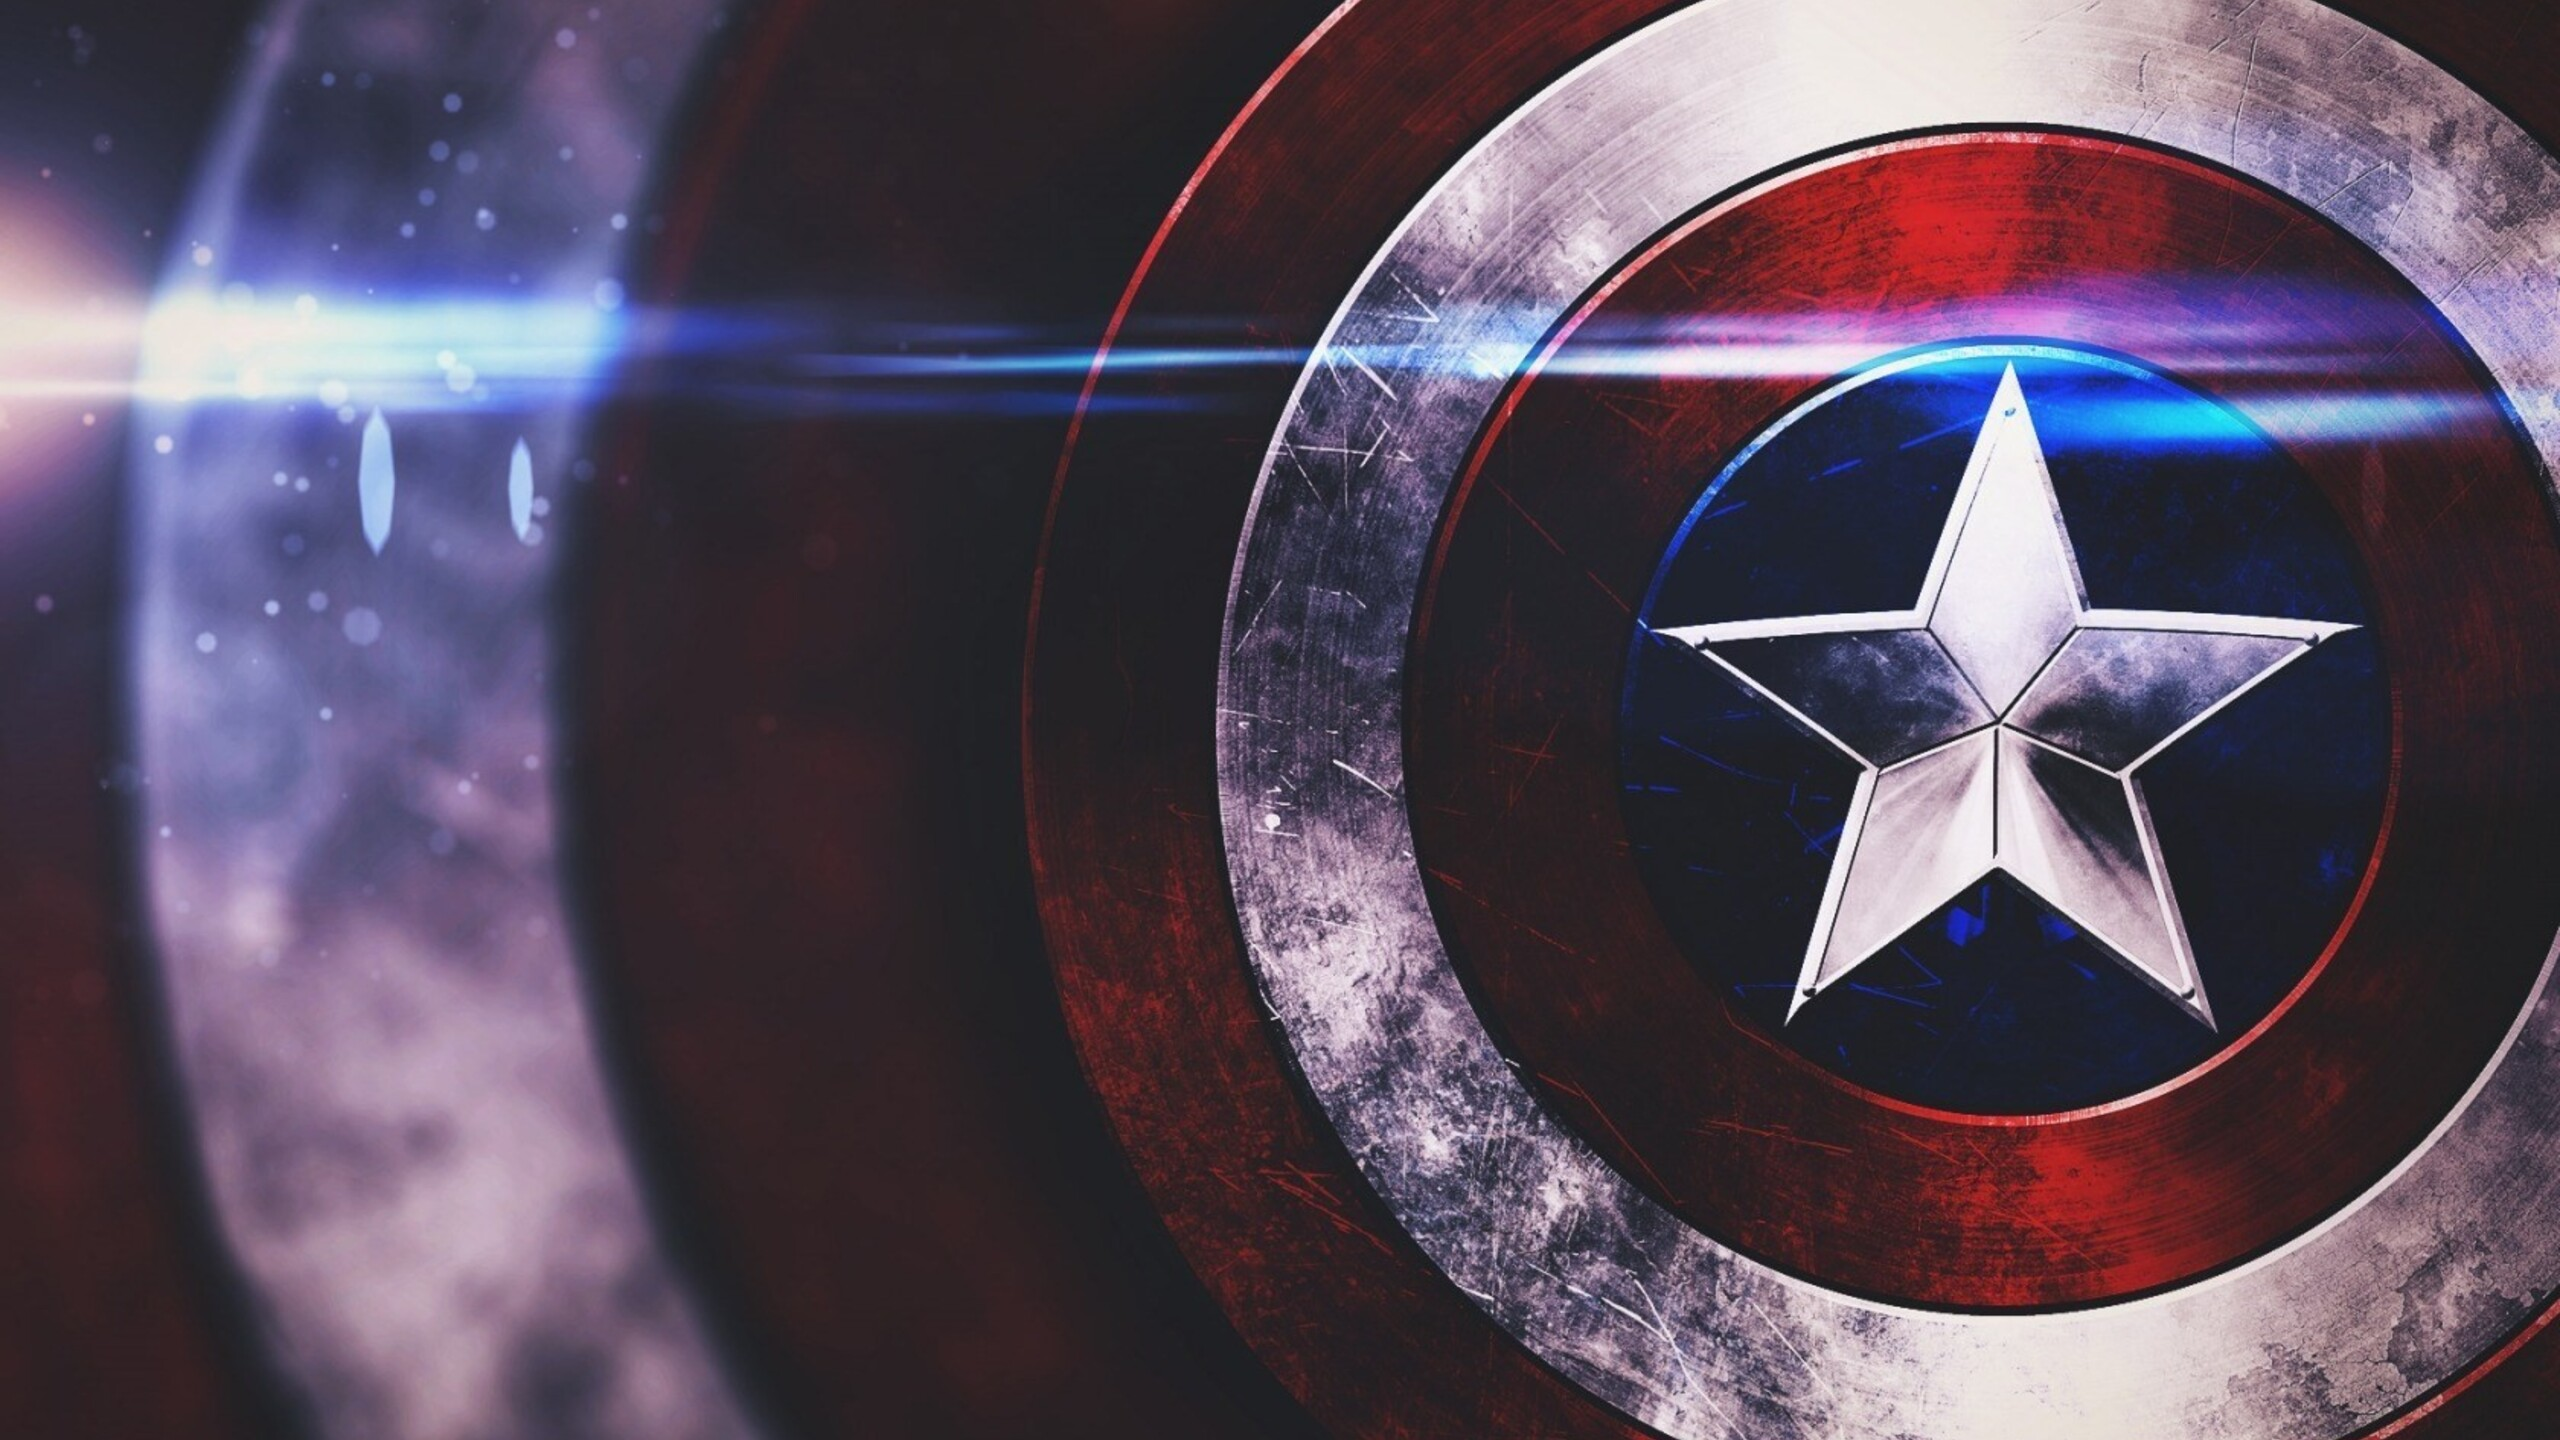 2560x1440 captain america shield 1440p resolution hd 4k wallpapers